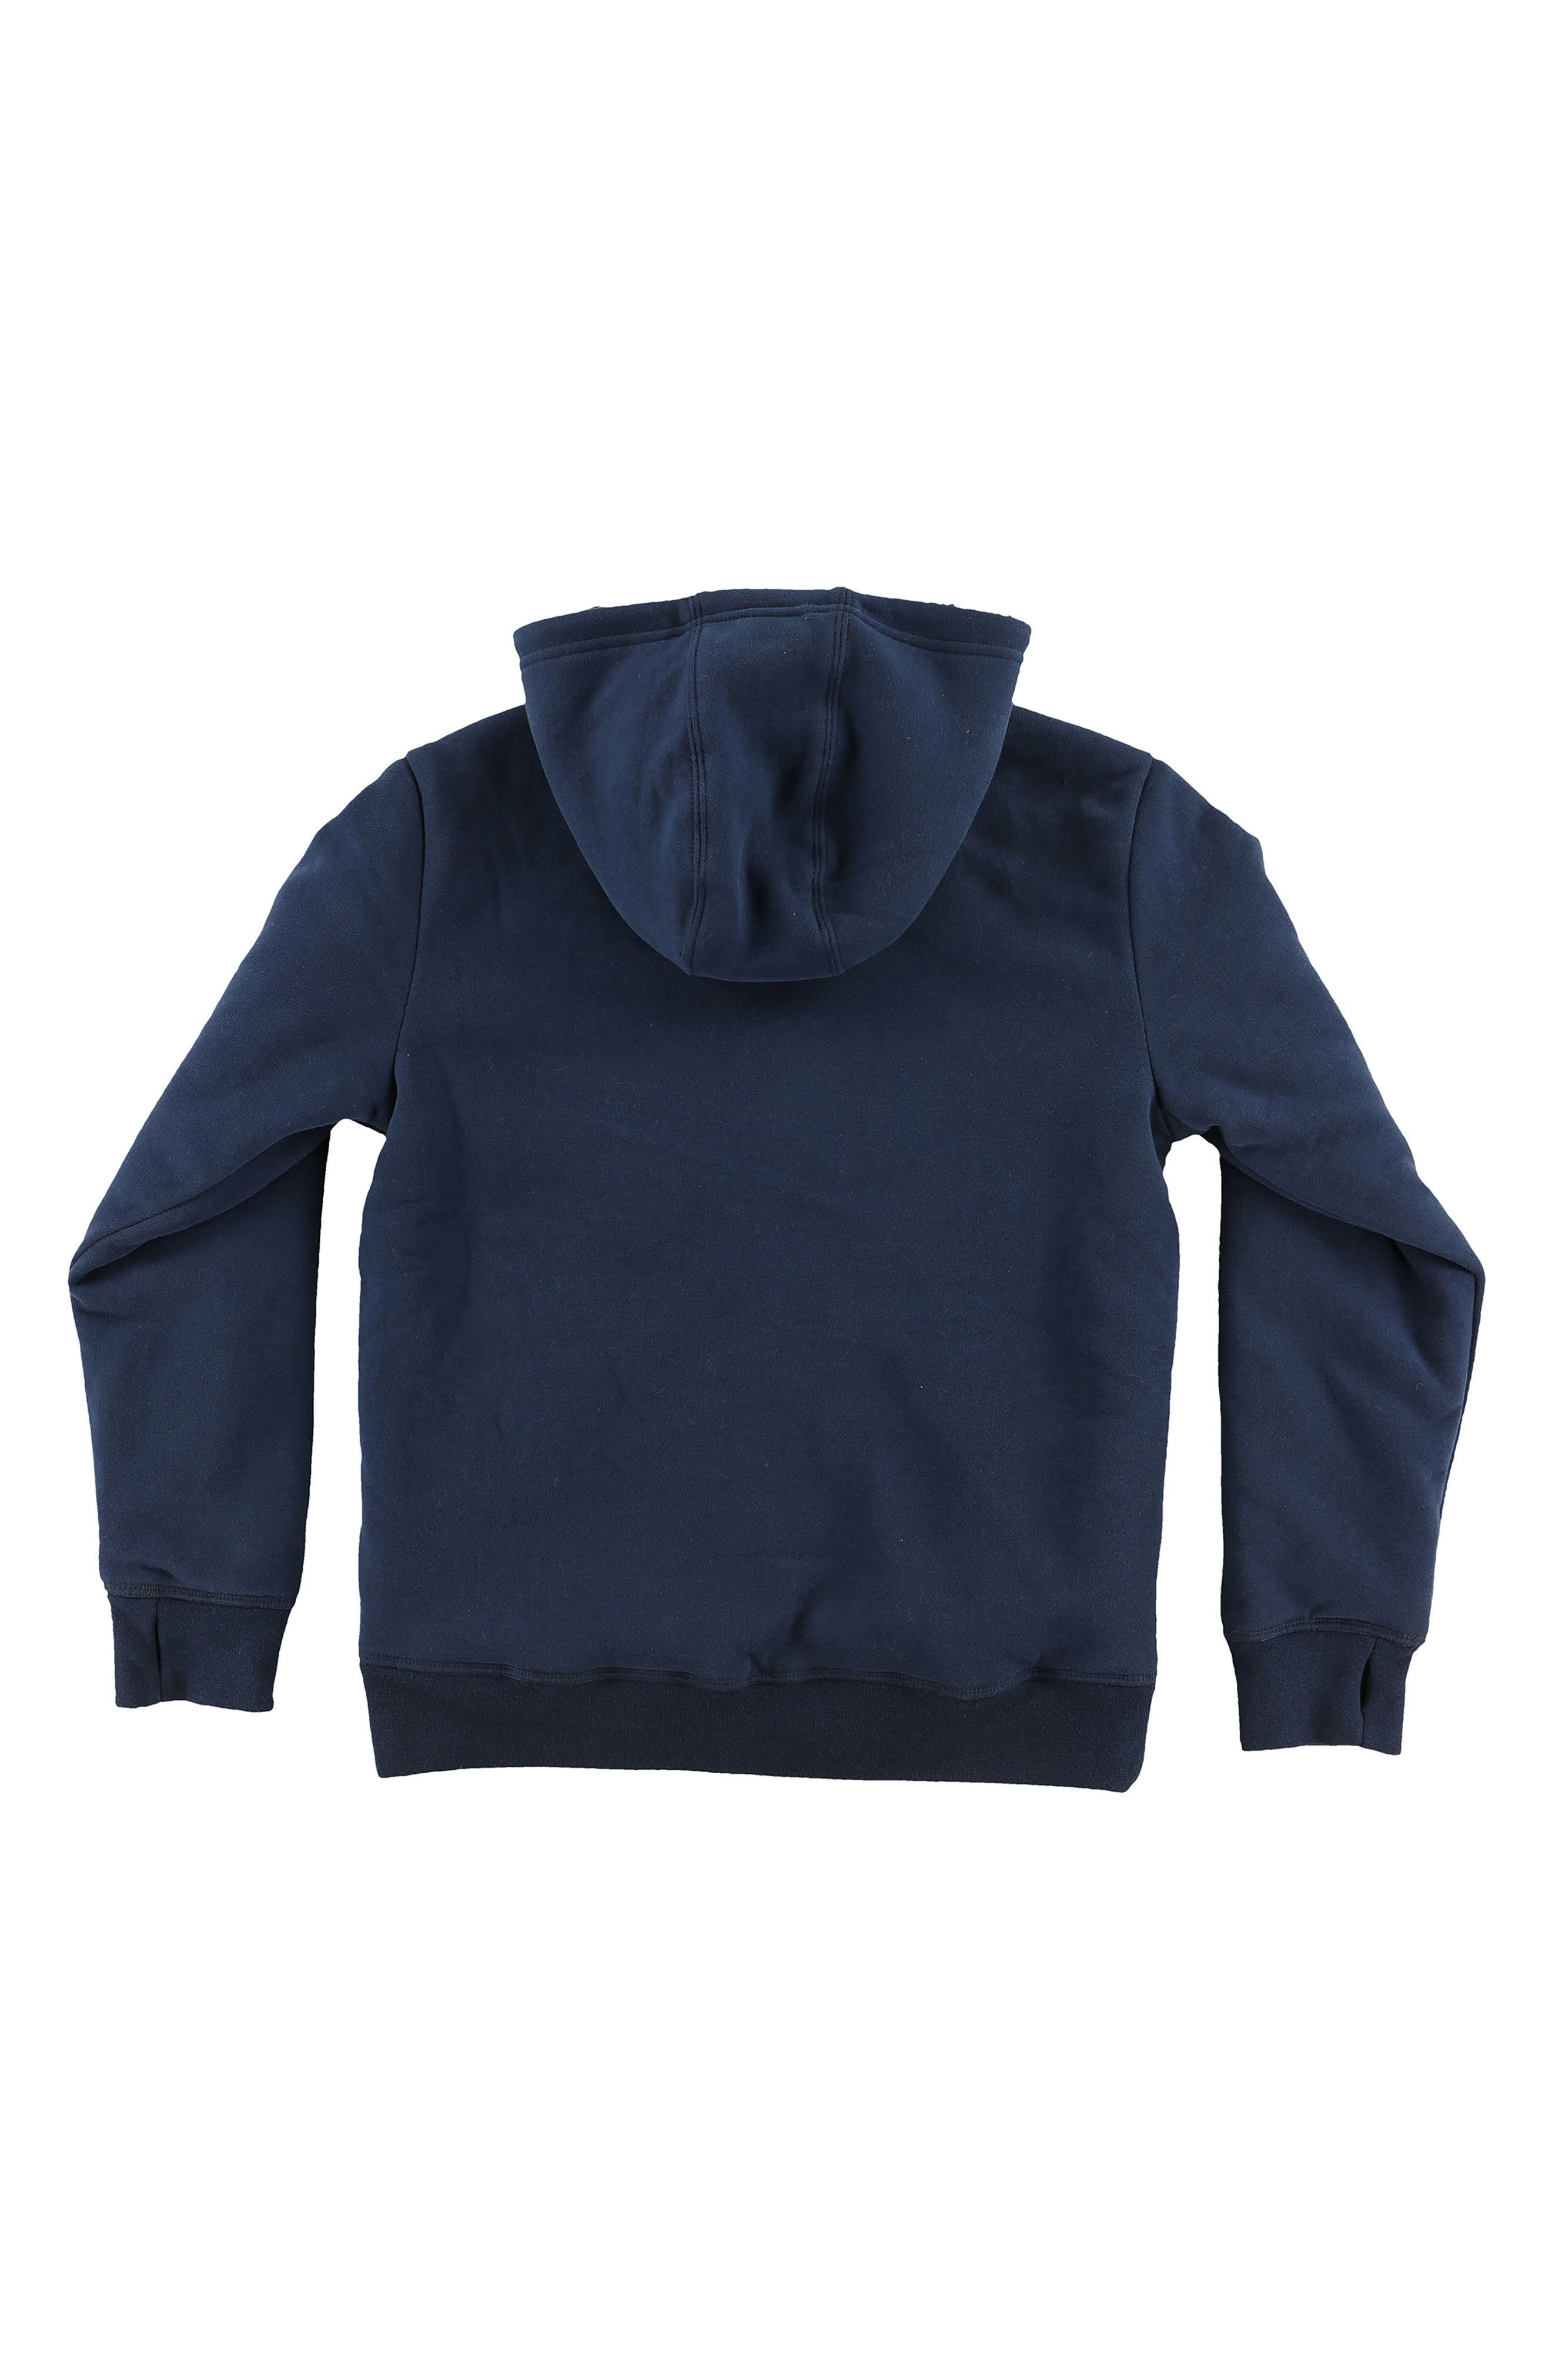 Staple Plush Lined Pullover Hoodie,                         Main,                         color, 410